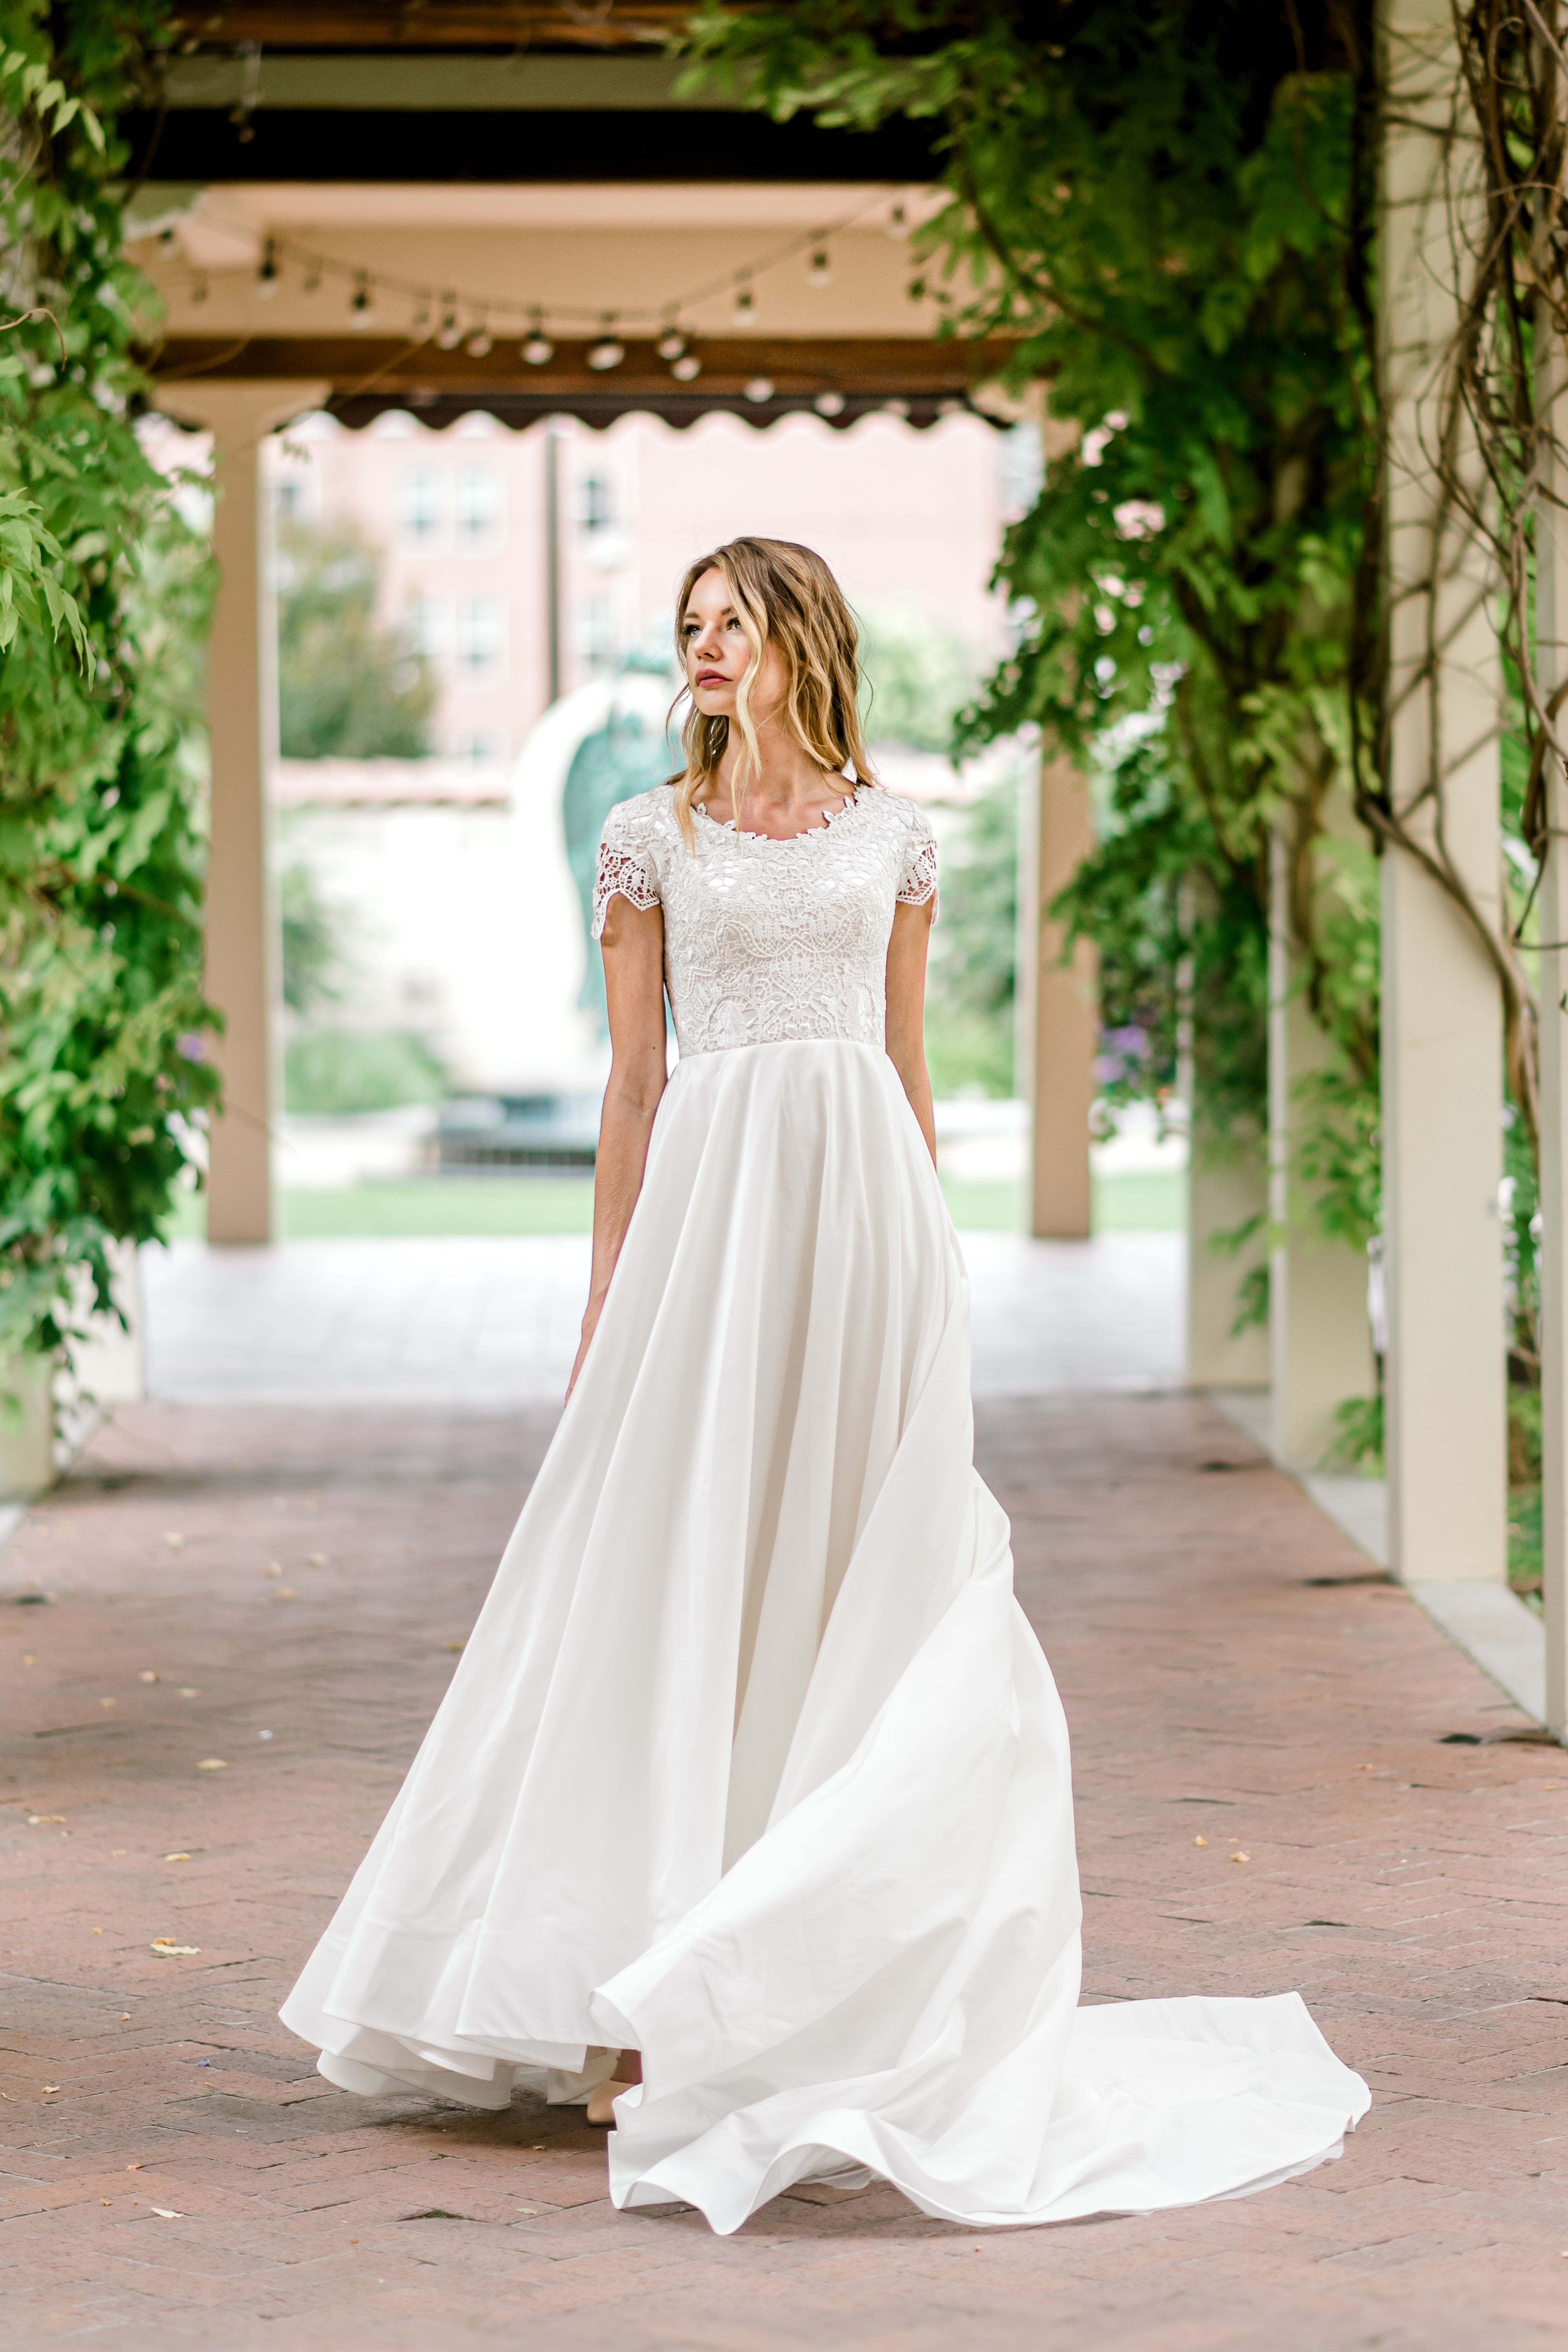 Mariah gown by Elizabeth Cooper Design Beautifully Dunn